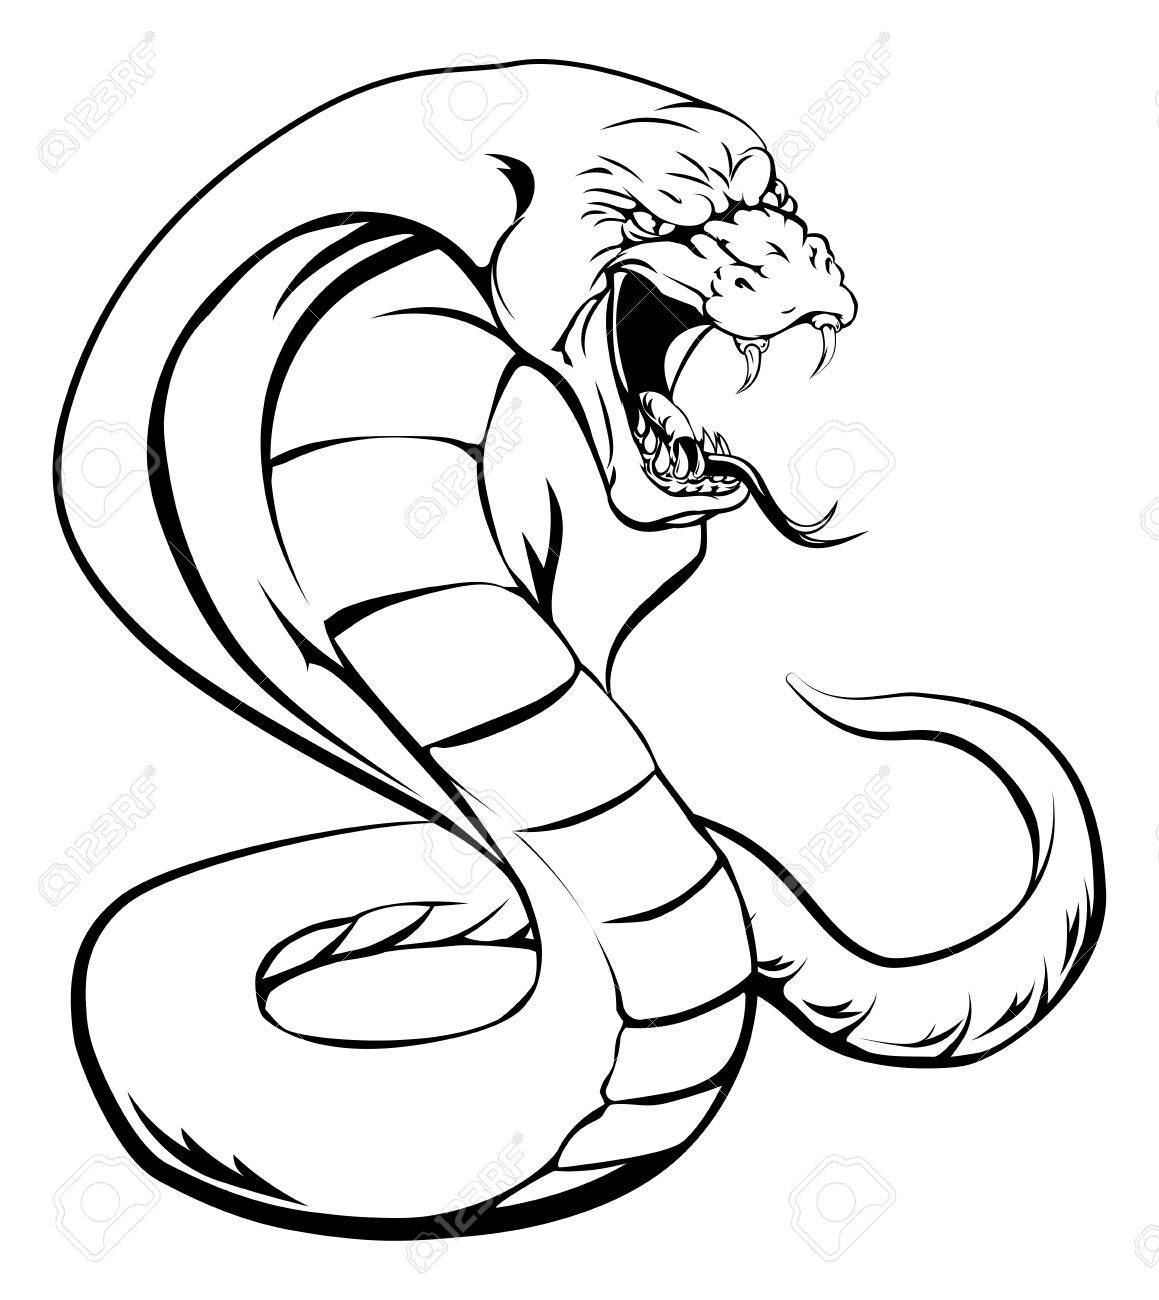 1159x1300 Attacking Snake Stock Photos Amp Pictures. Royalty Free Attacking